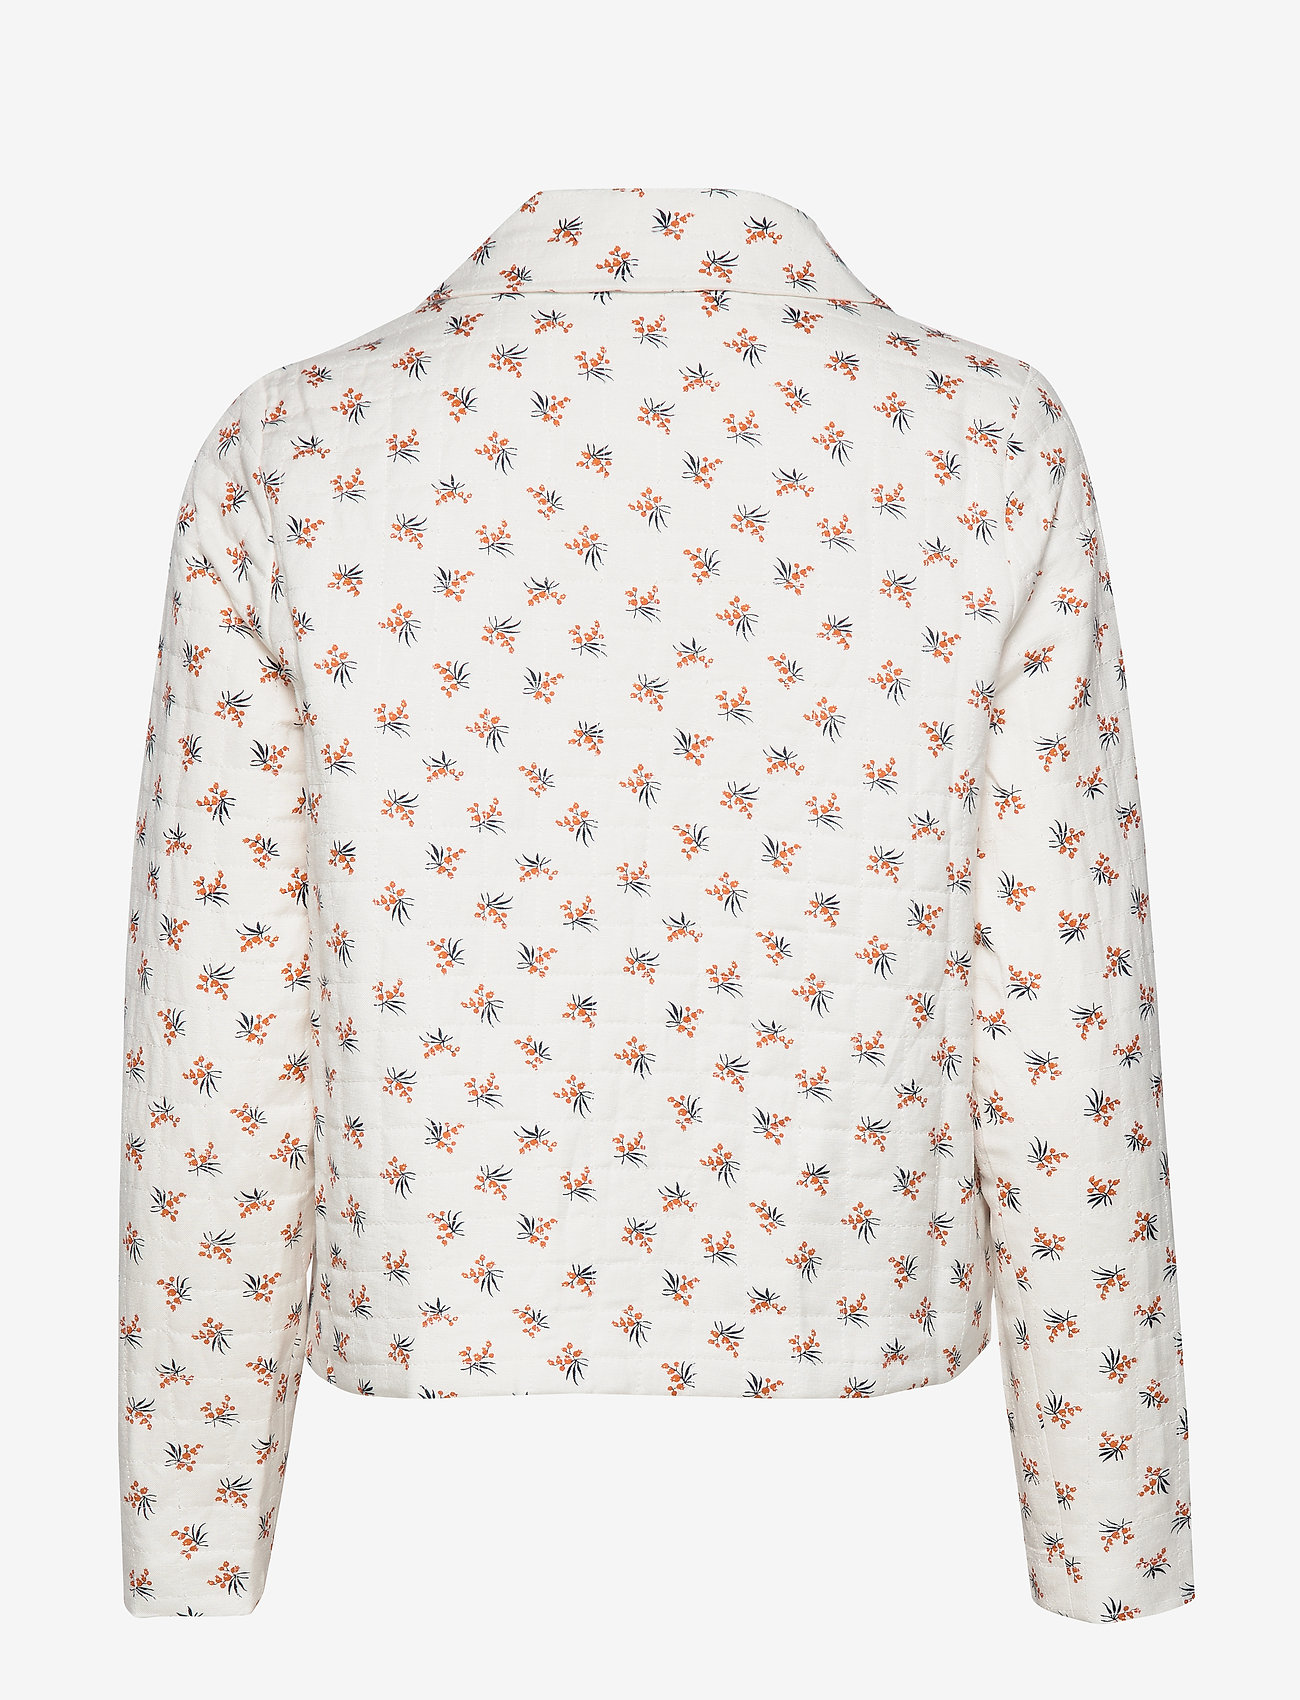 Maud Quilted Prarie Jacket - Jackets & Coats